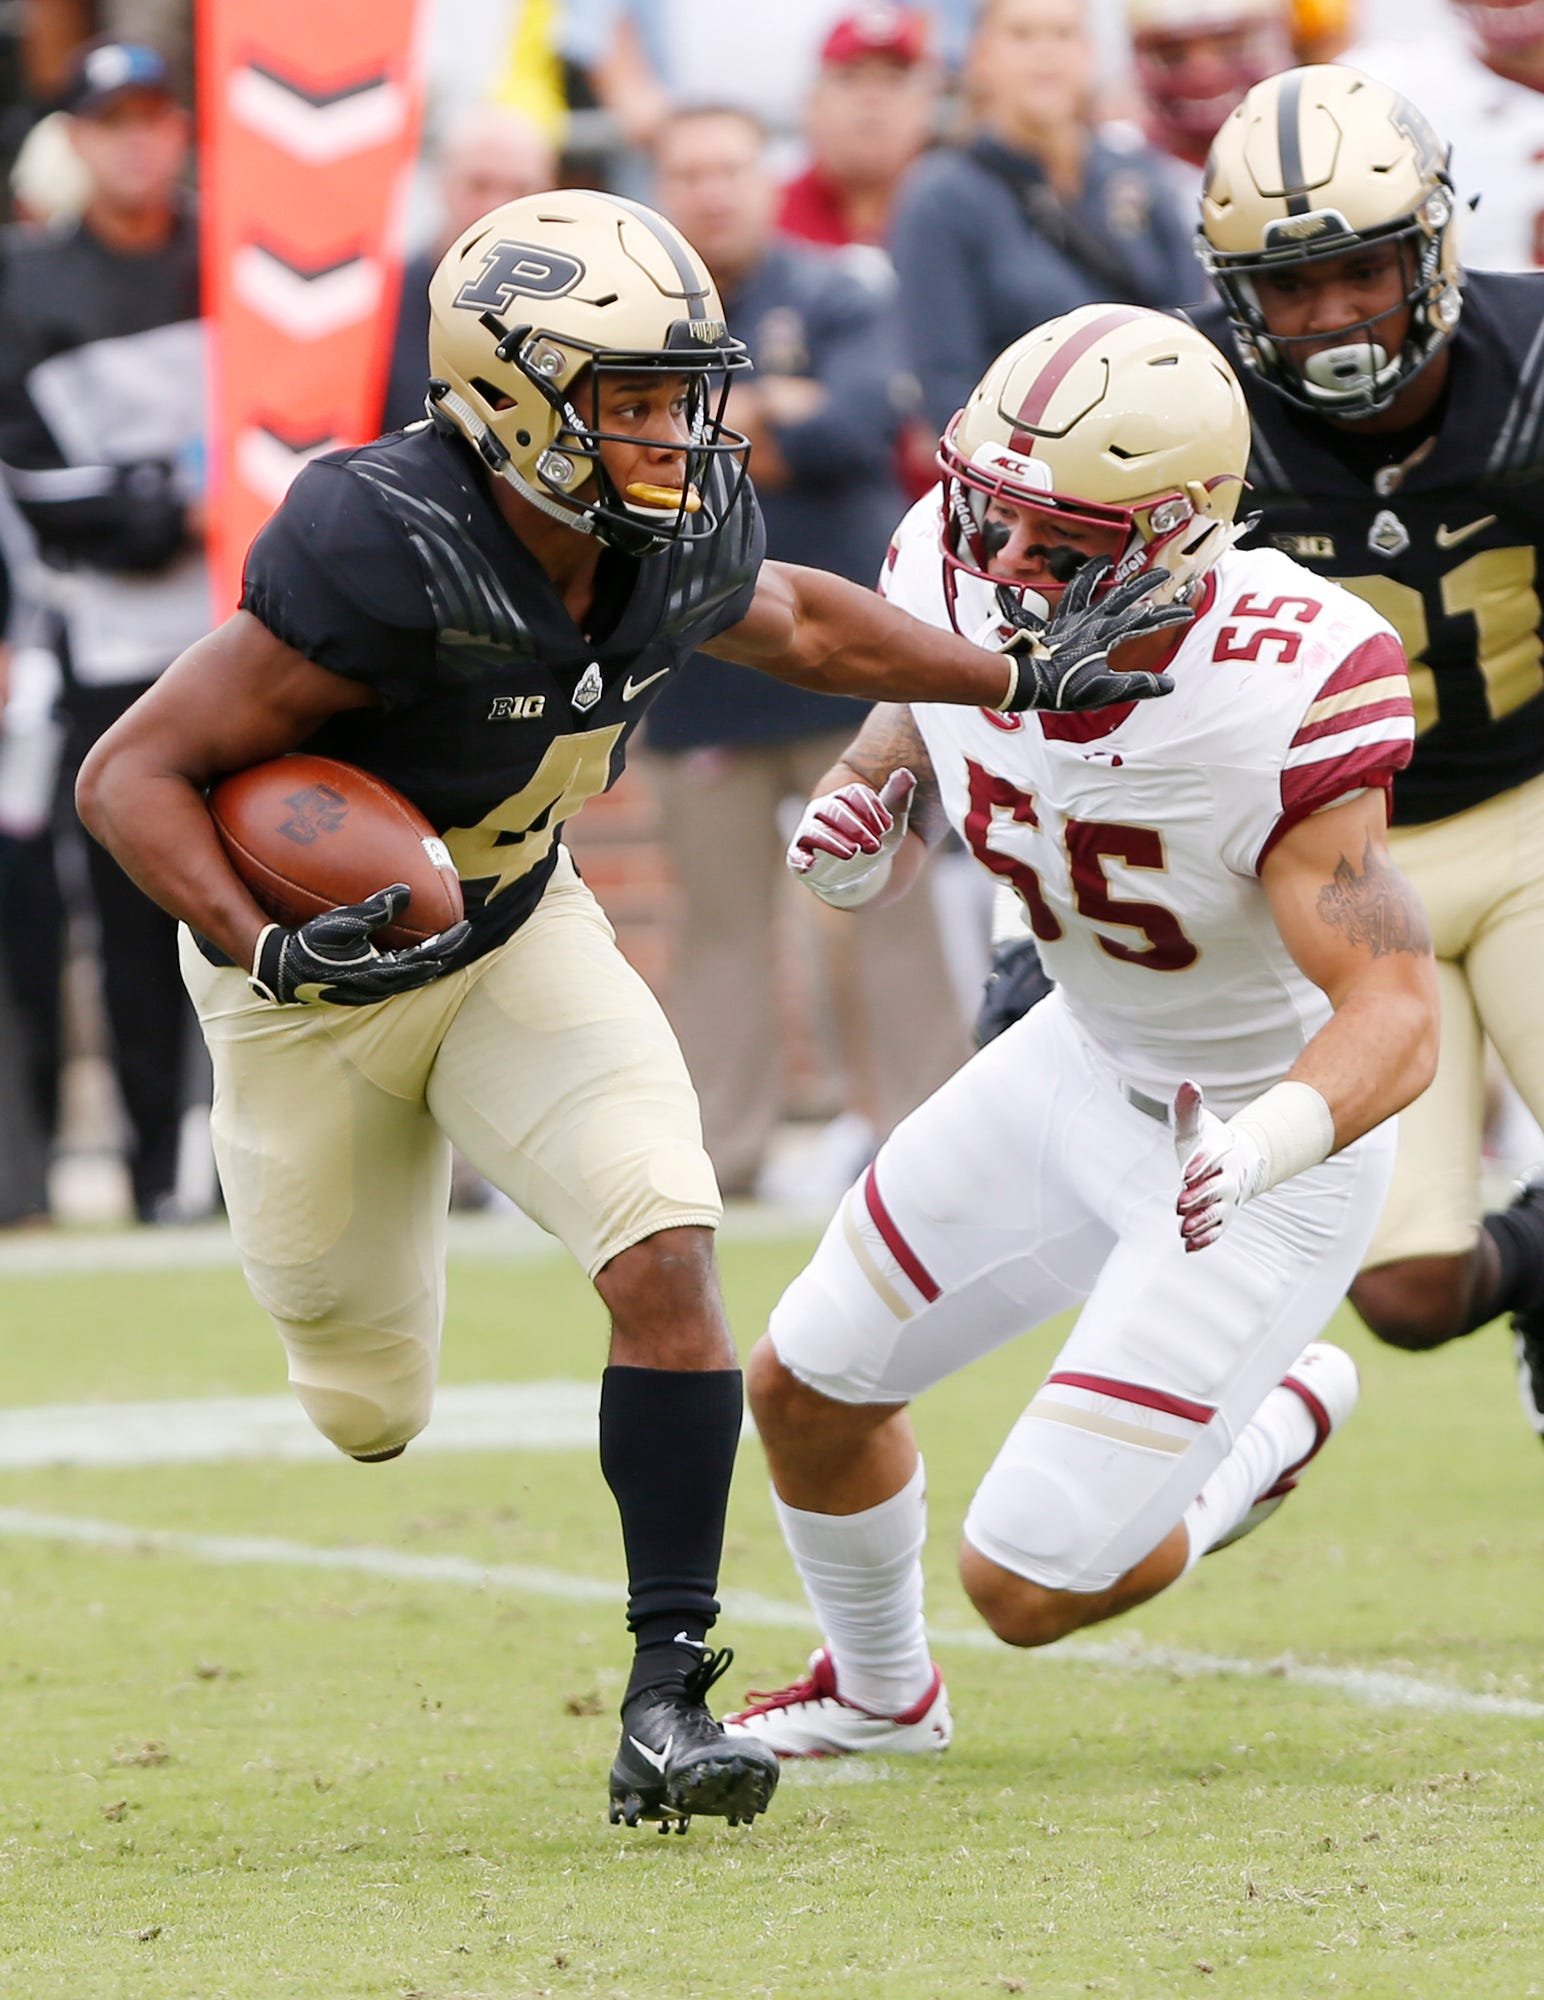 Rondale Moore gives a stiff arm to Isaiah McDuffie of Boston College during a kick return in the first half Saturday. Moore earned his second Big Ten Freshman of the Week honor Monday.